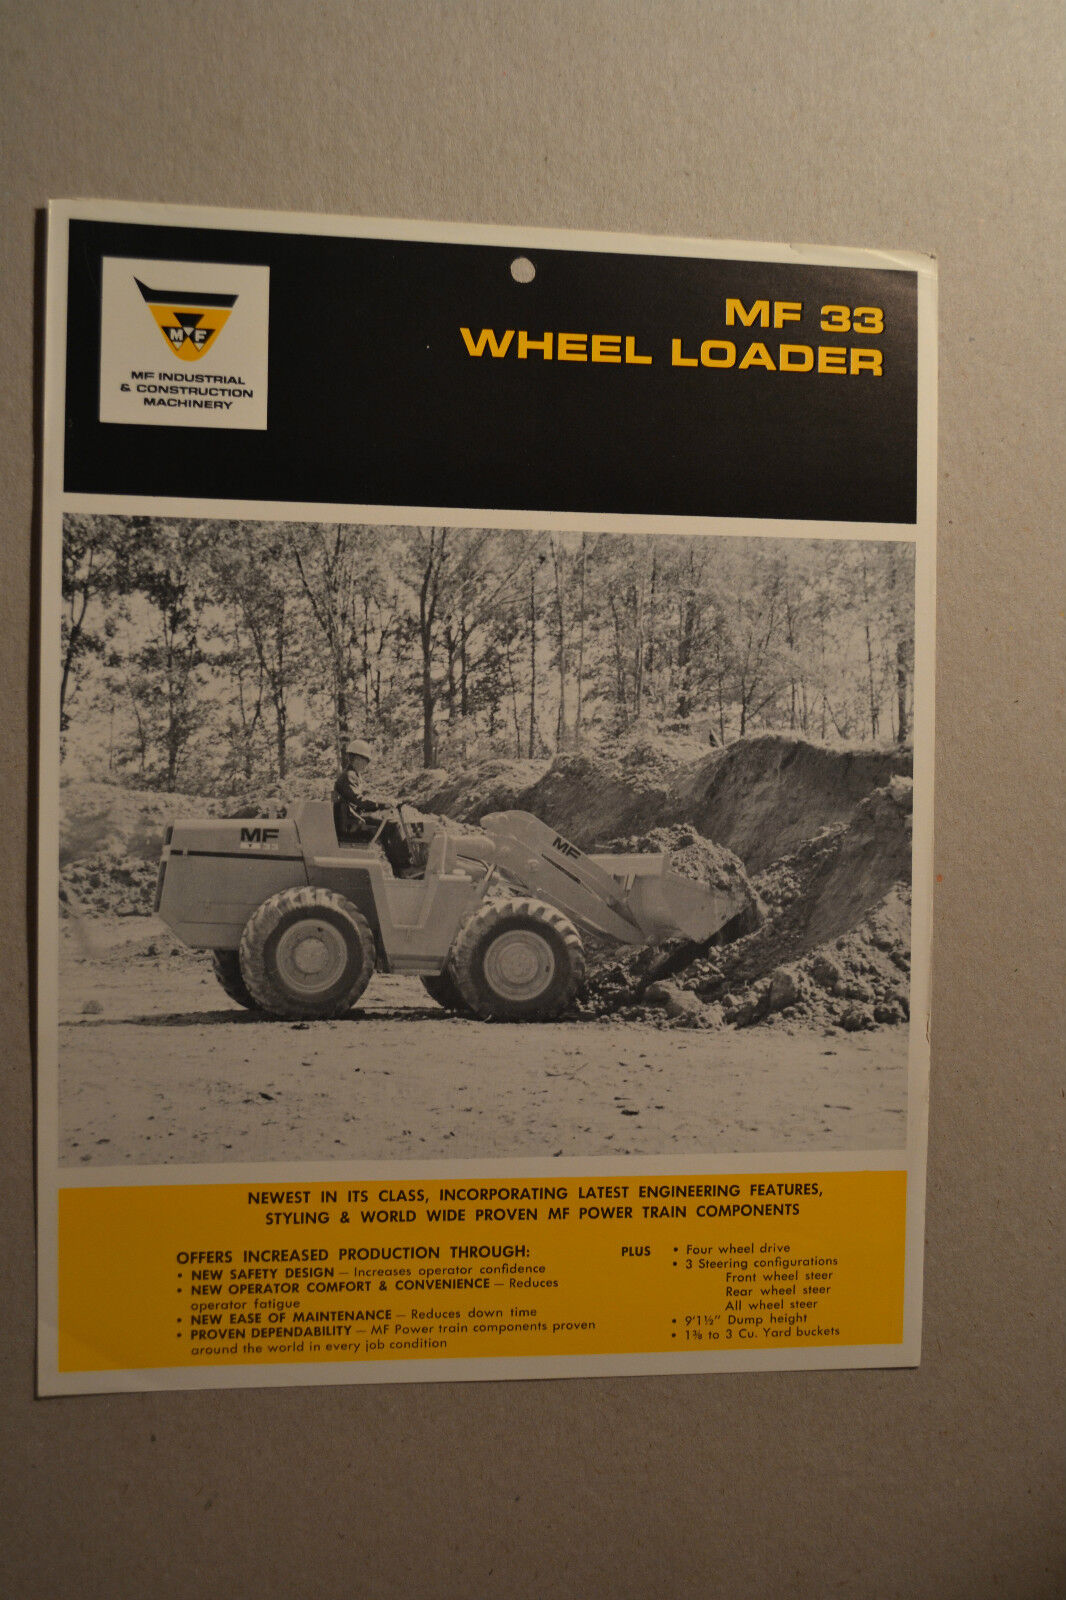 Massey Ferguson Brochure - MF 55 Wheel Loader - 1968 1 of 2Only 2 available  See More